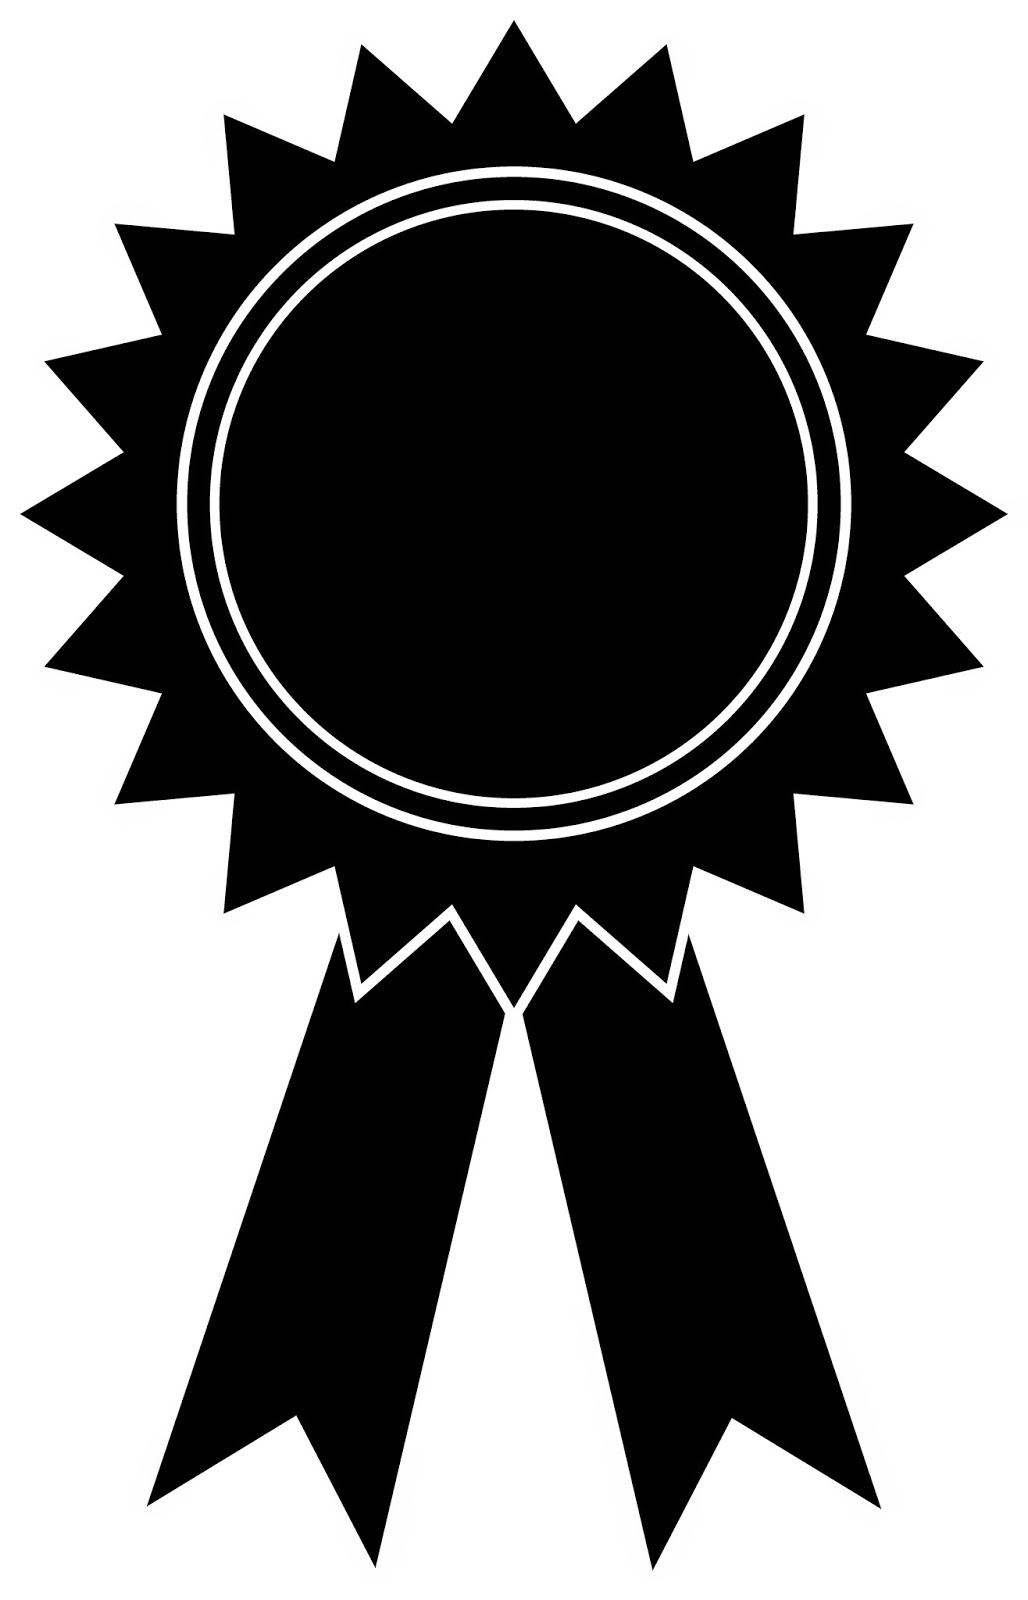 picture about Printable Ribbon identify Award Ribbon Printable Clipart Panda - Free of charge Clipart Photos